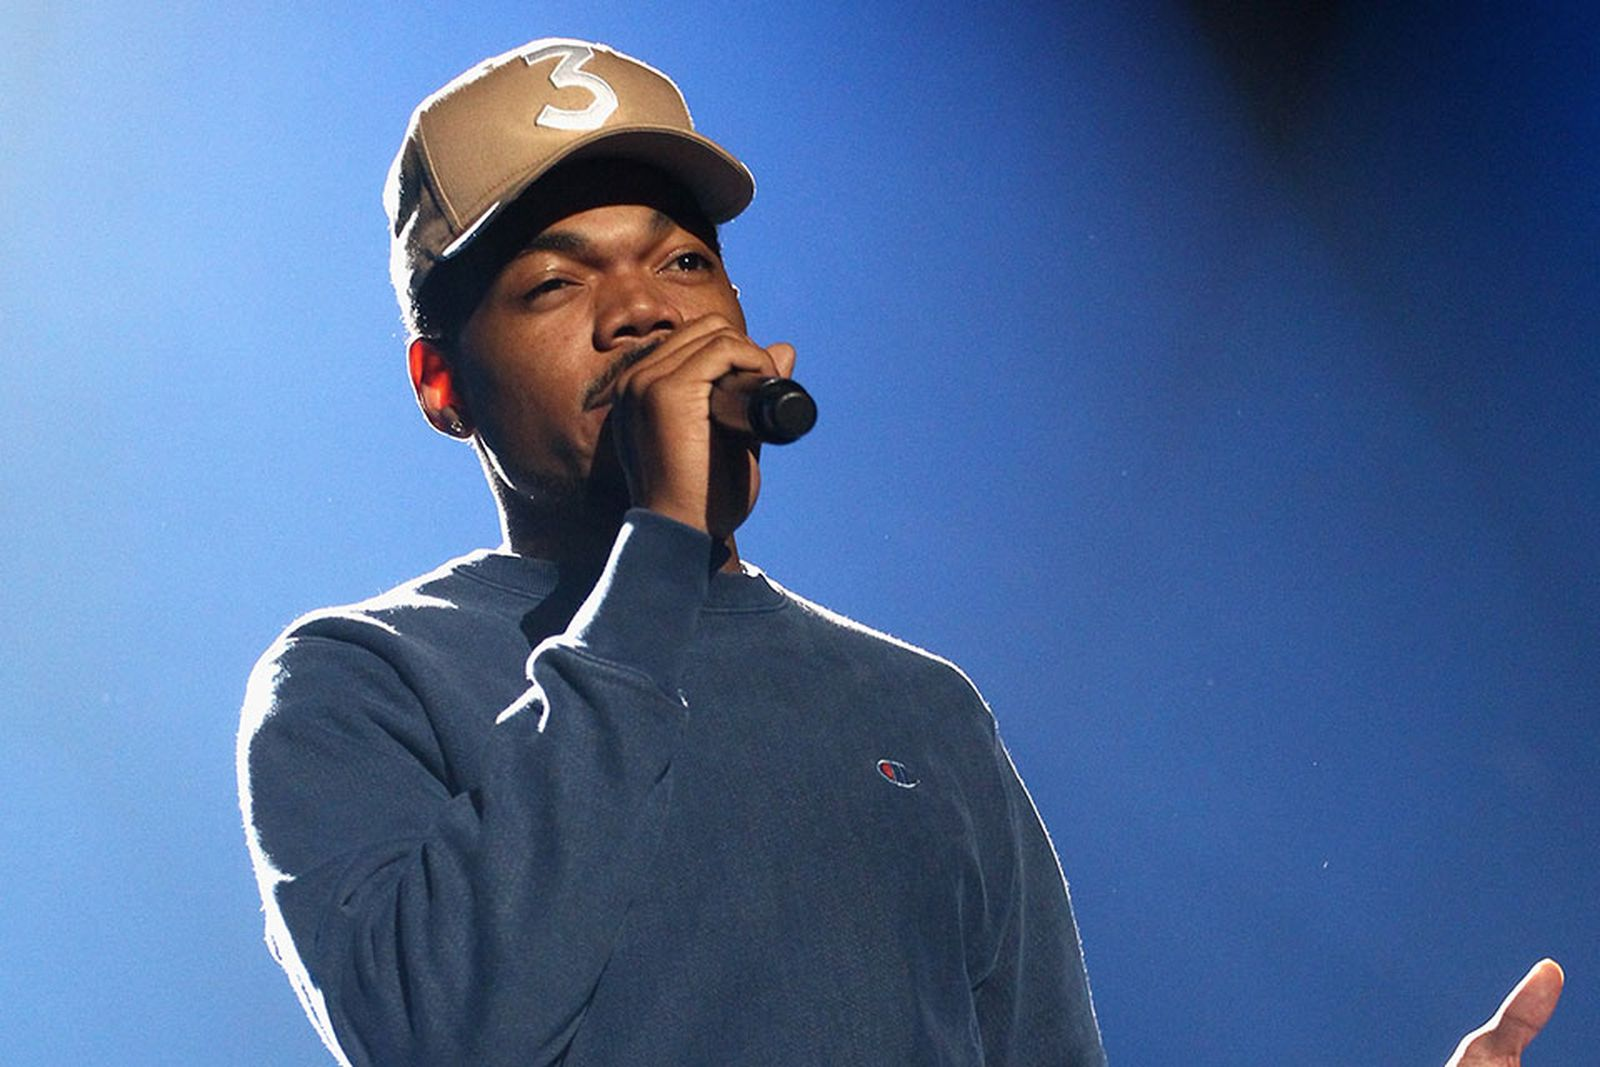 chance the rapper new album release date